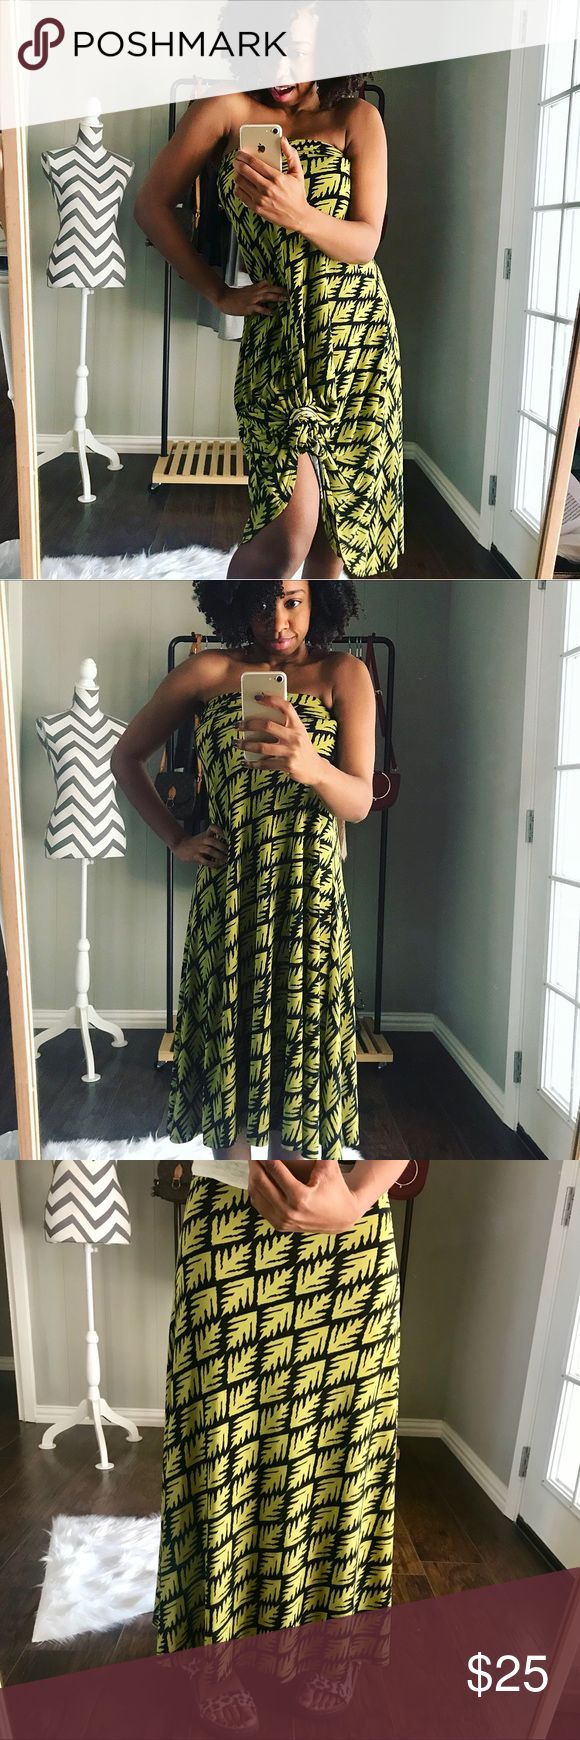 LuLaroe Leaves Maxi What a sassy skirt by Lularoe! I love the versatility I can get out of this skirt. Wear it as a flowy dress or as a maxi. Has the yoga foldable waistband so you can even wear short. Even though this is a xxs, it stretches and can fit me. I typically wear a small or size 6. LuLaRoe Skirts